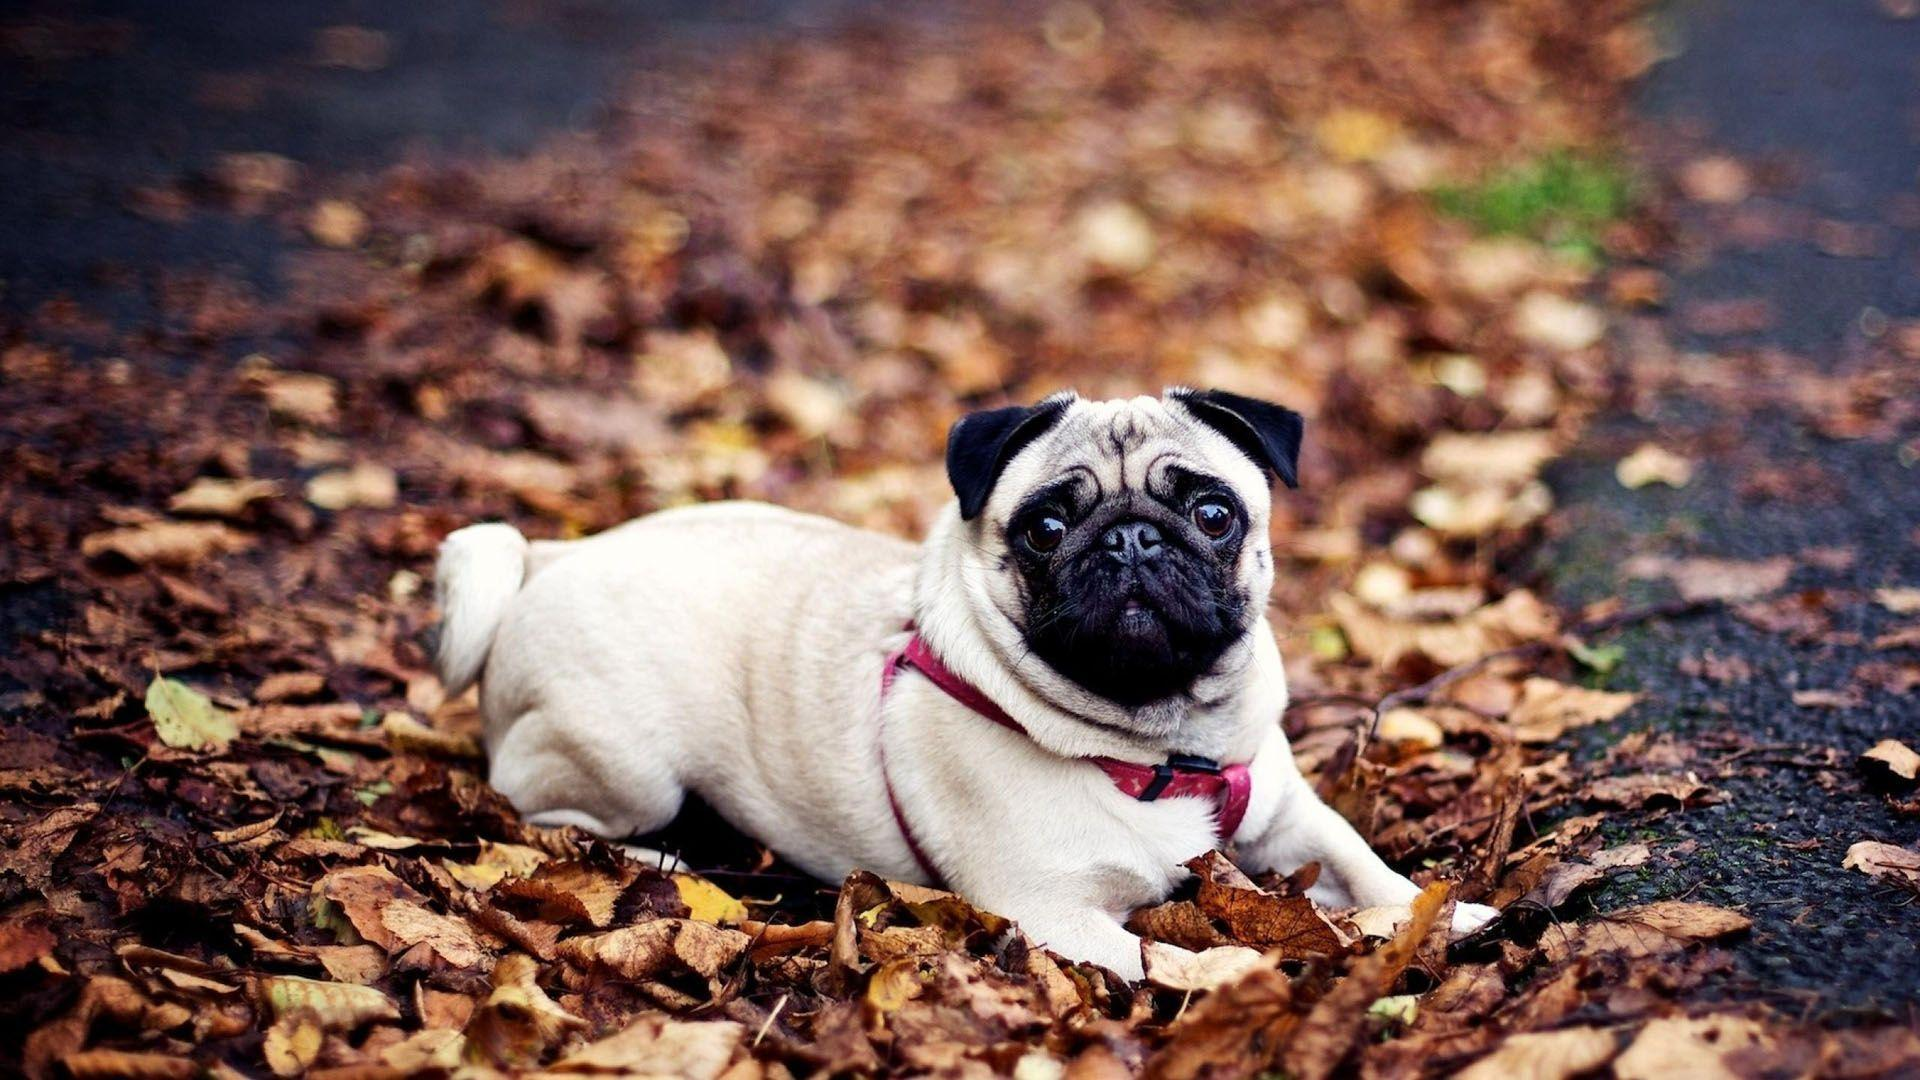 Pug Dog Wallpapers Wallpaper Cave